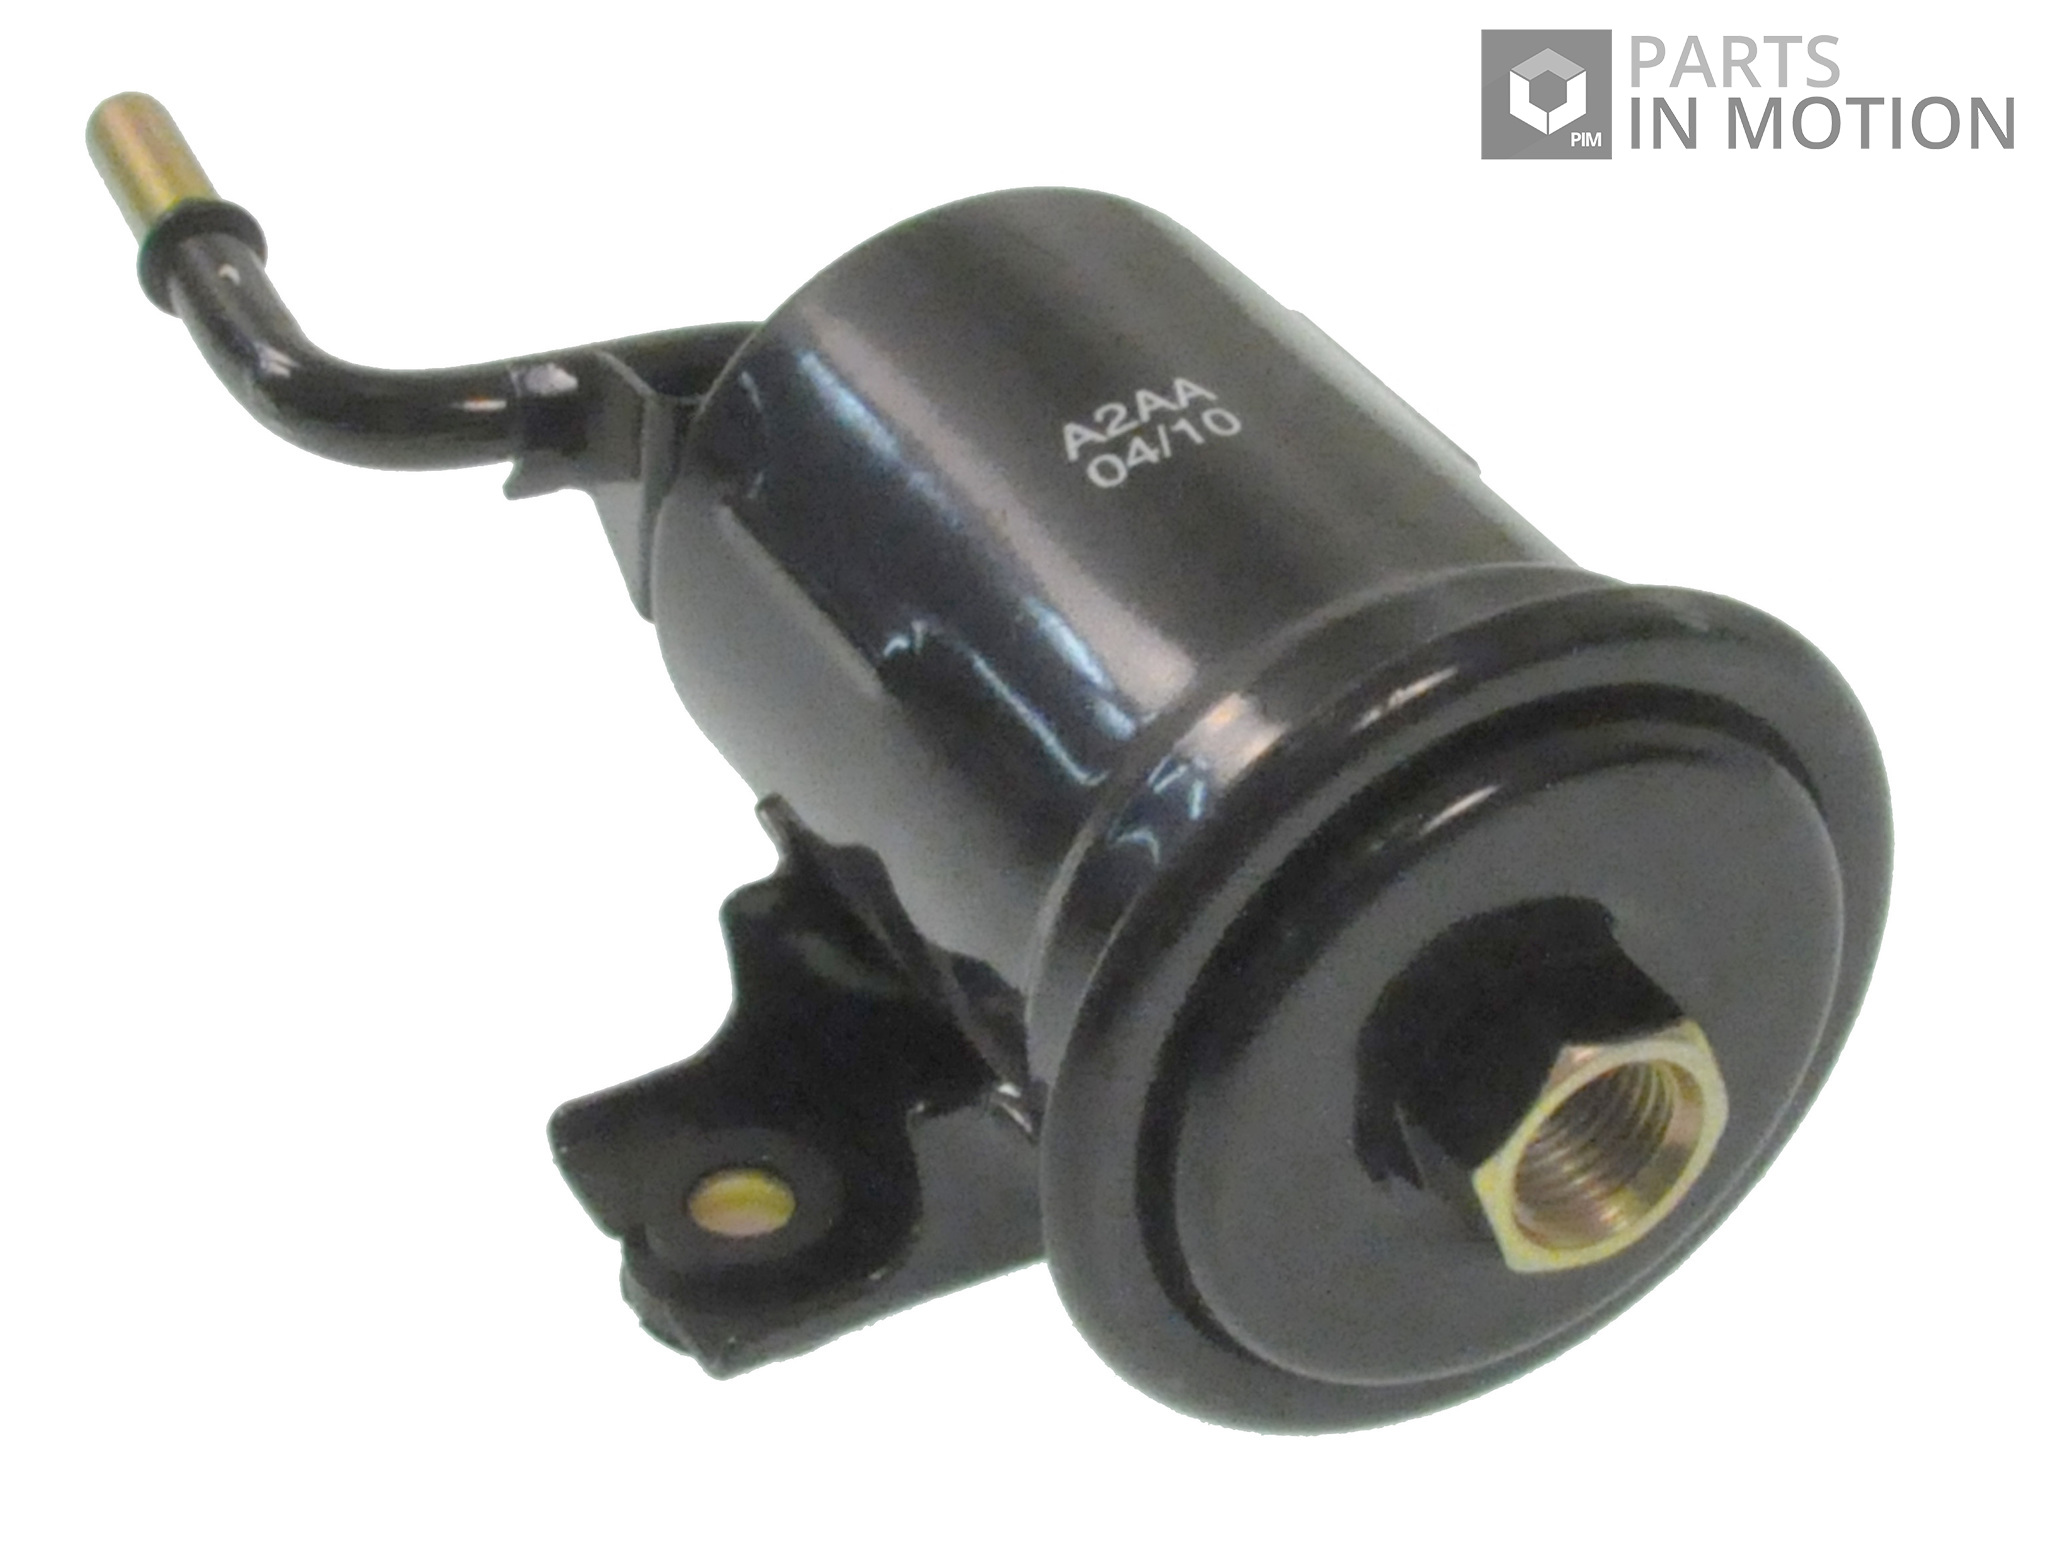 Fuel Filter Fits Toyota Corolla E11 14 00 To 02 4zz Fe Adl Location 1 4